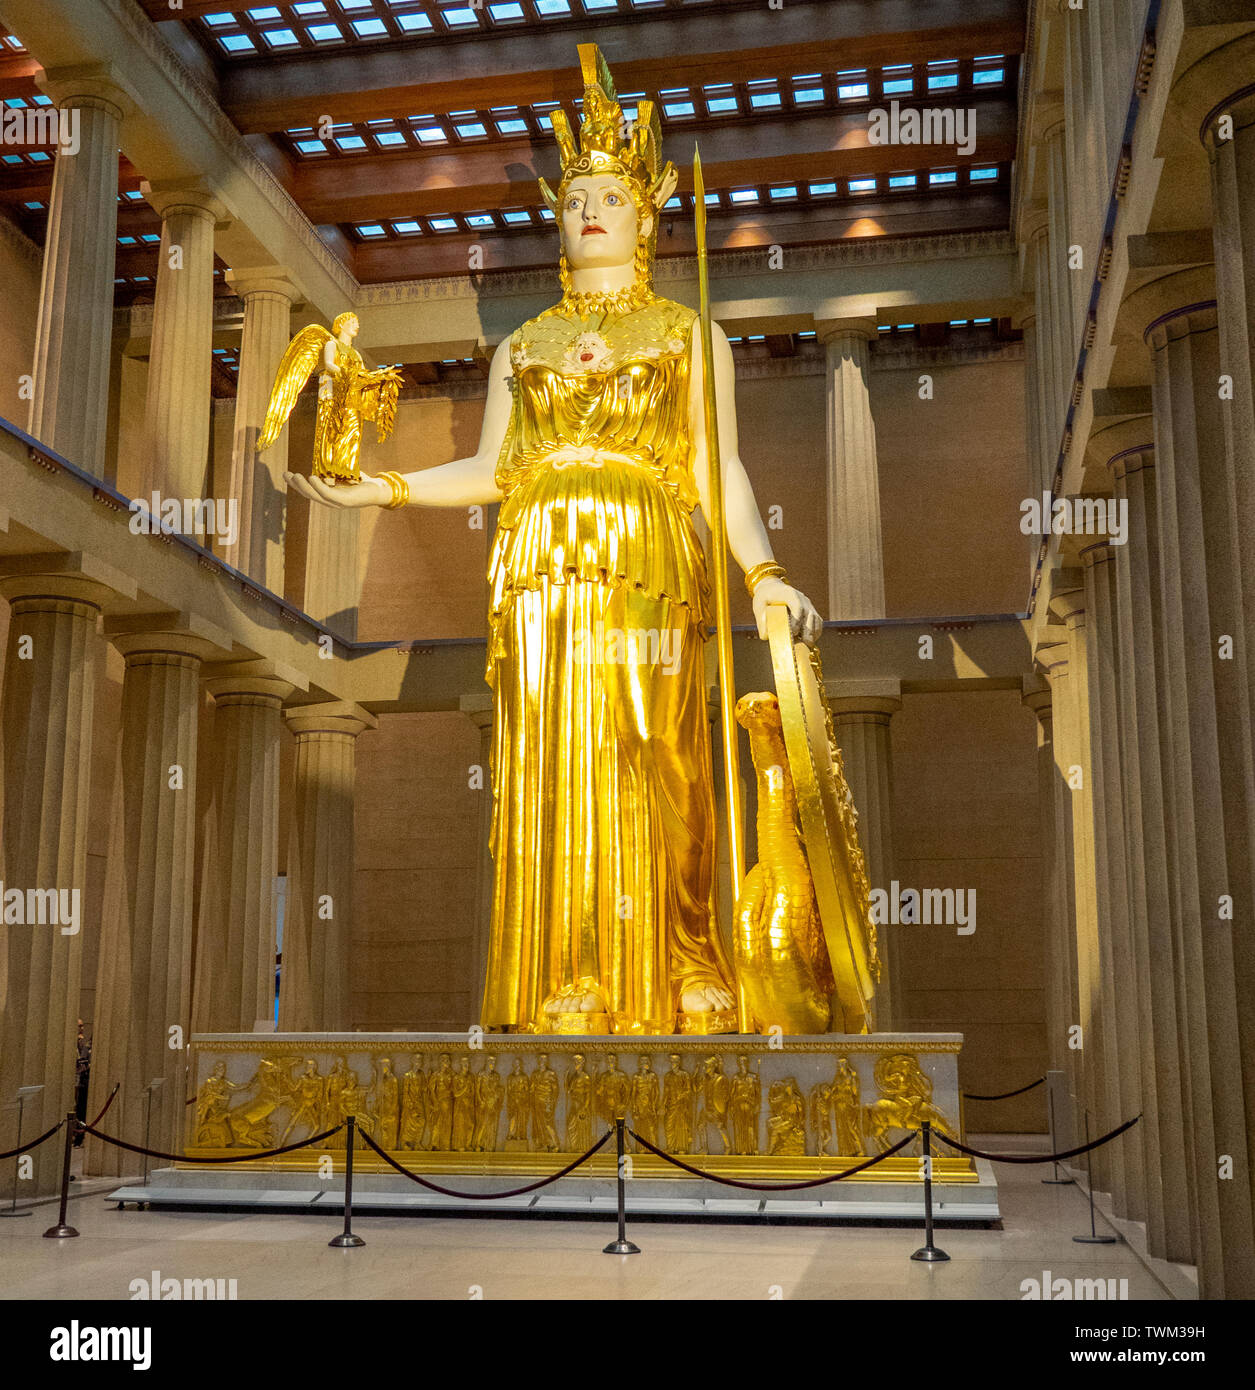 full-scale-replica-of-athena-parthenos-statue-holding-statue-of-goddess-nike-inside-parthenon-in-centennial-park-nashville-tennessee-usa-TWM39H.jpg